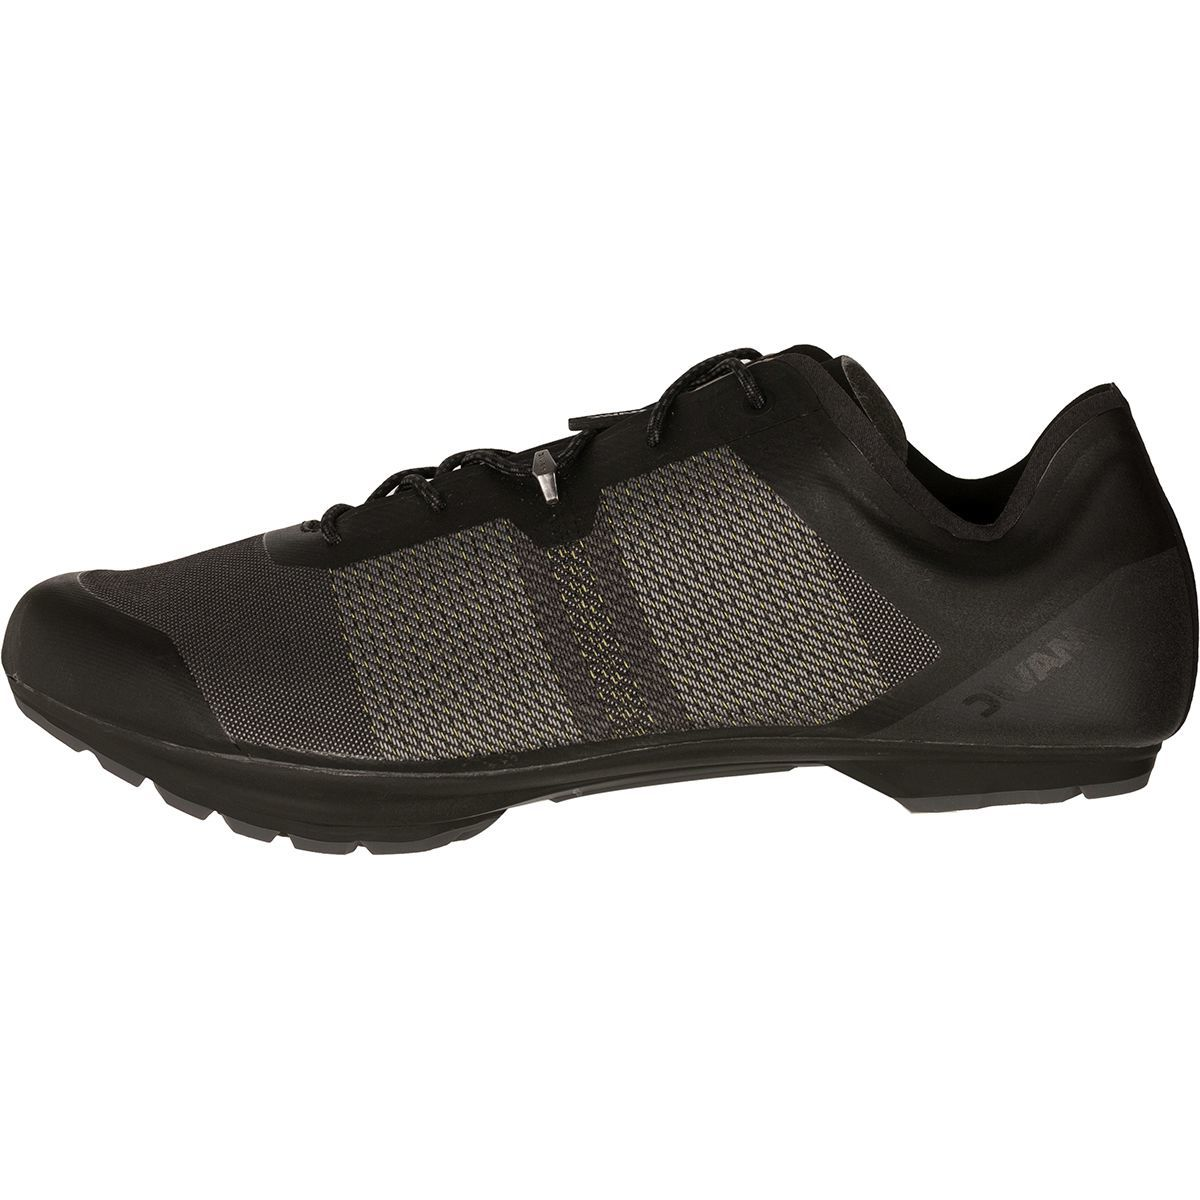 Mavic Allroad Pro Cycling Shoe - Men's